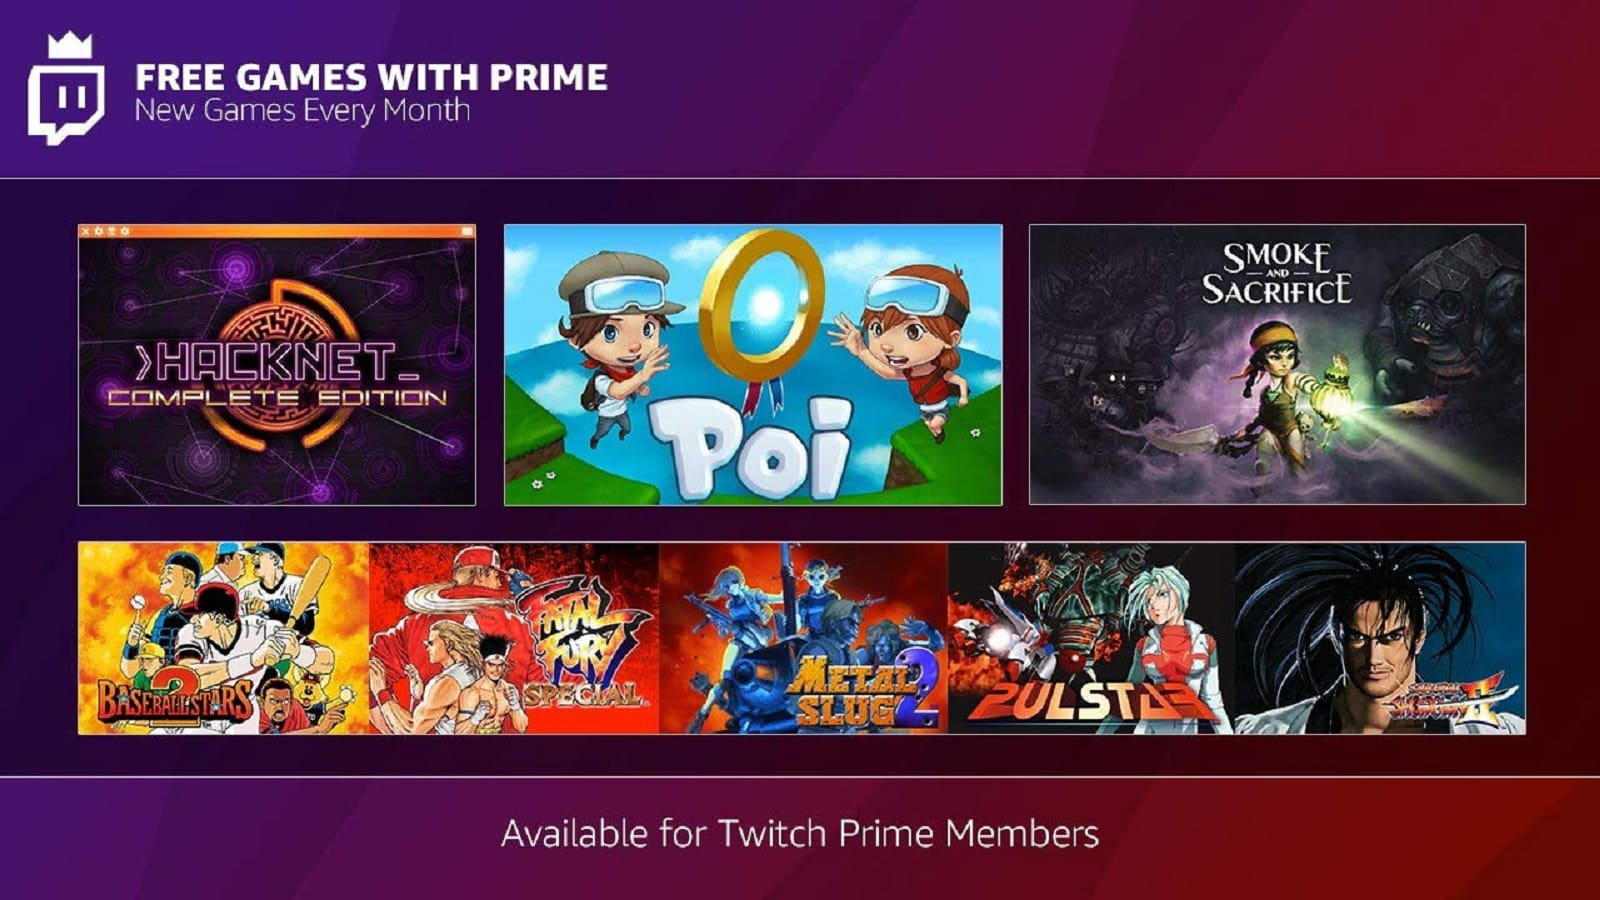 twitch prime free games december 2018